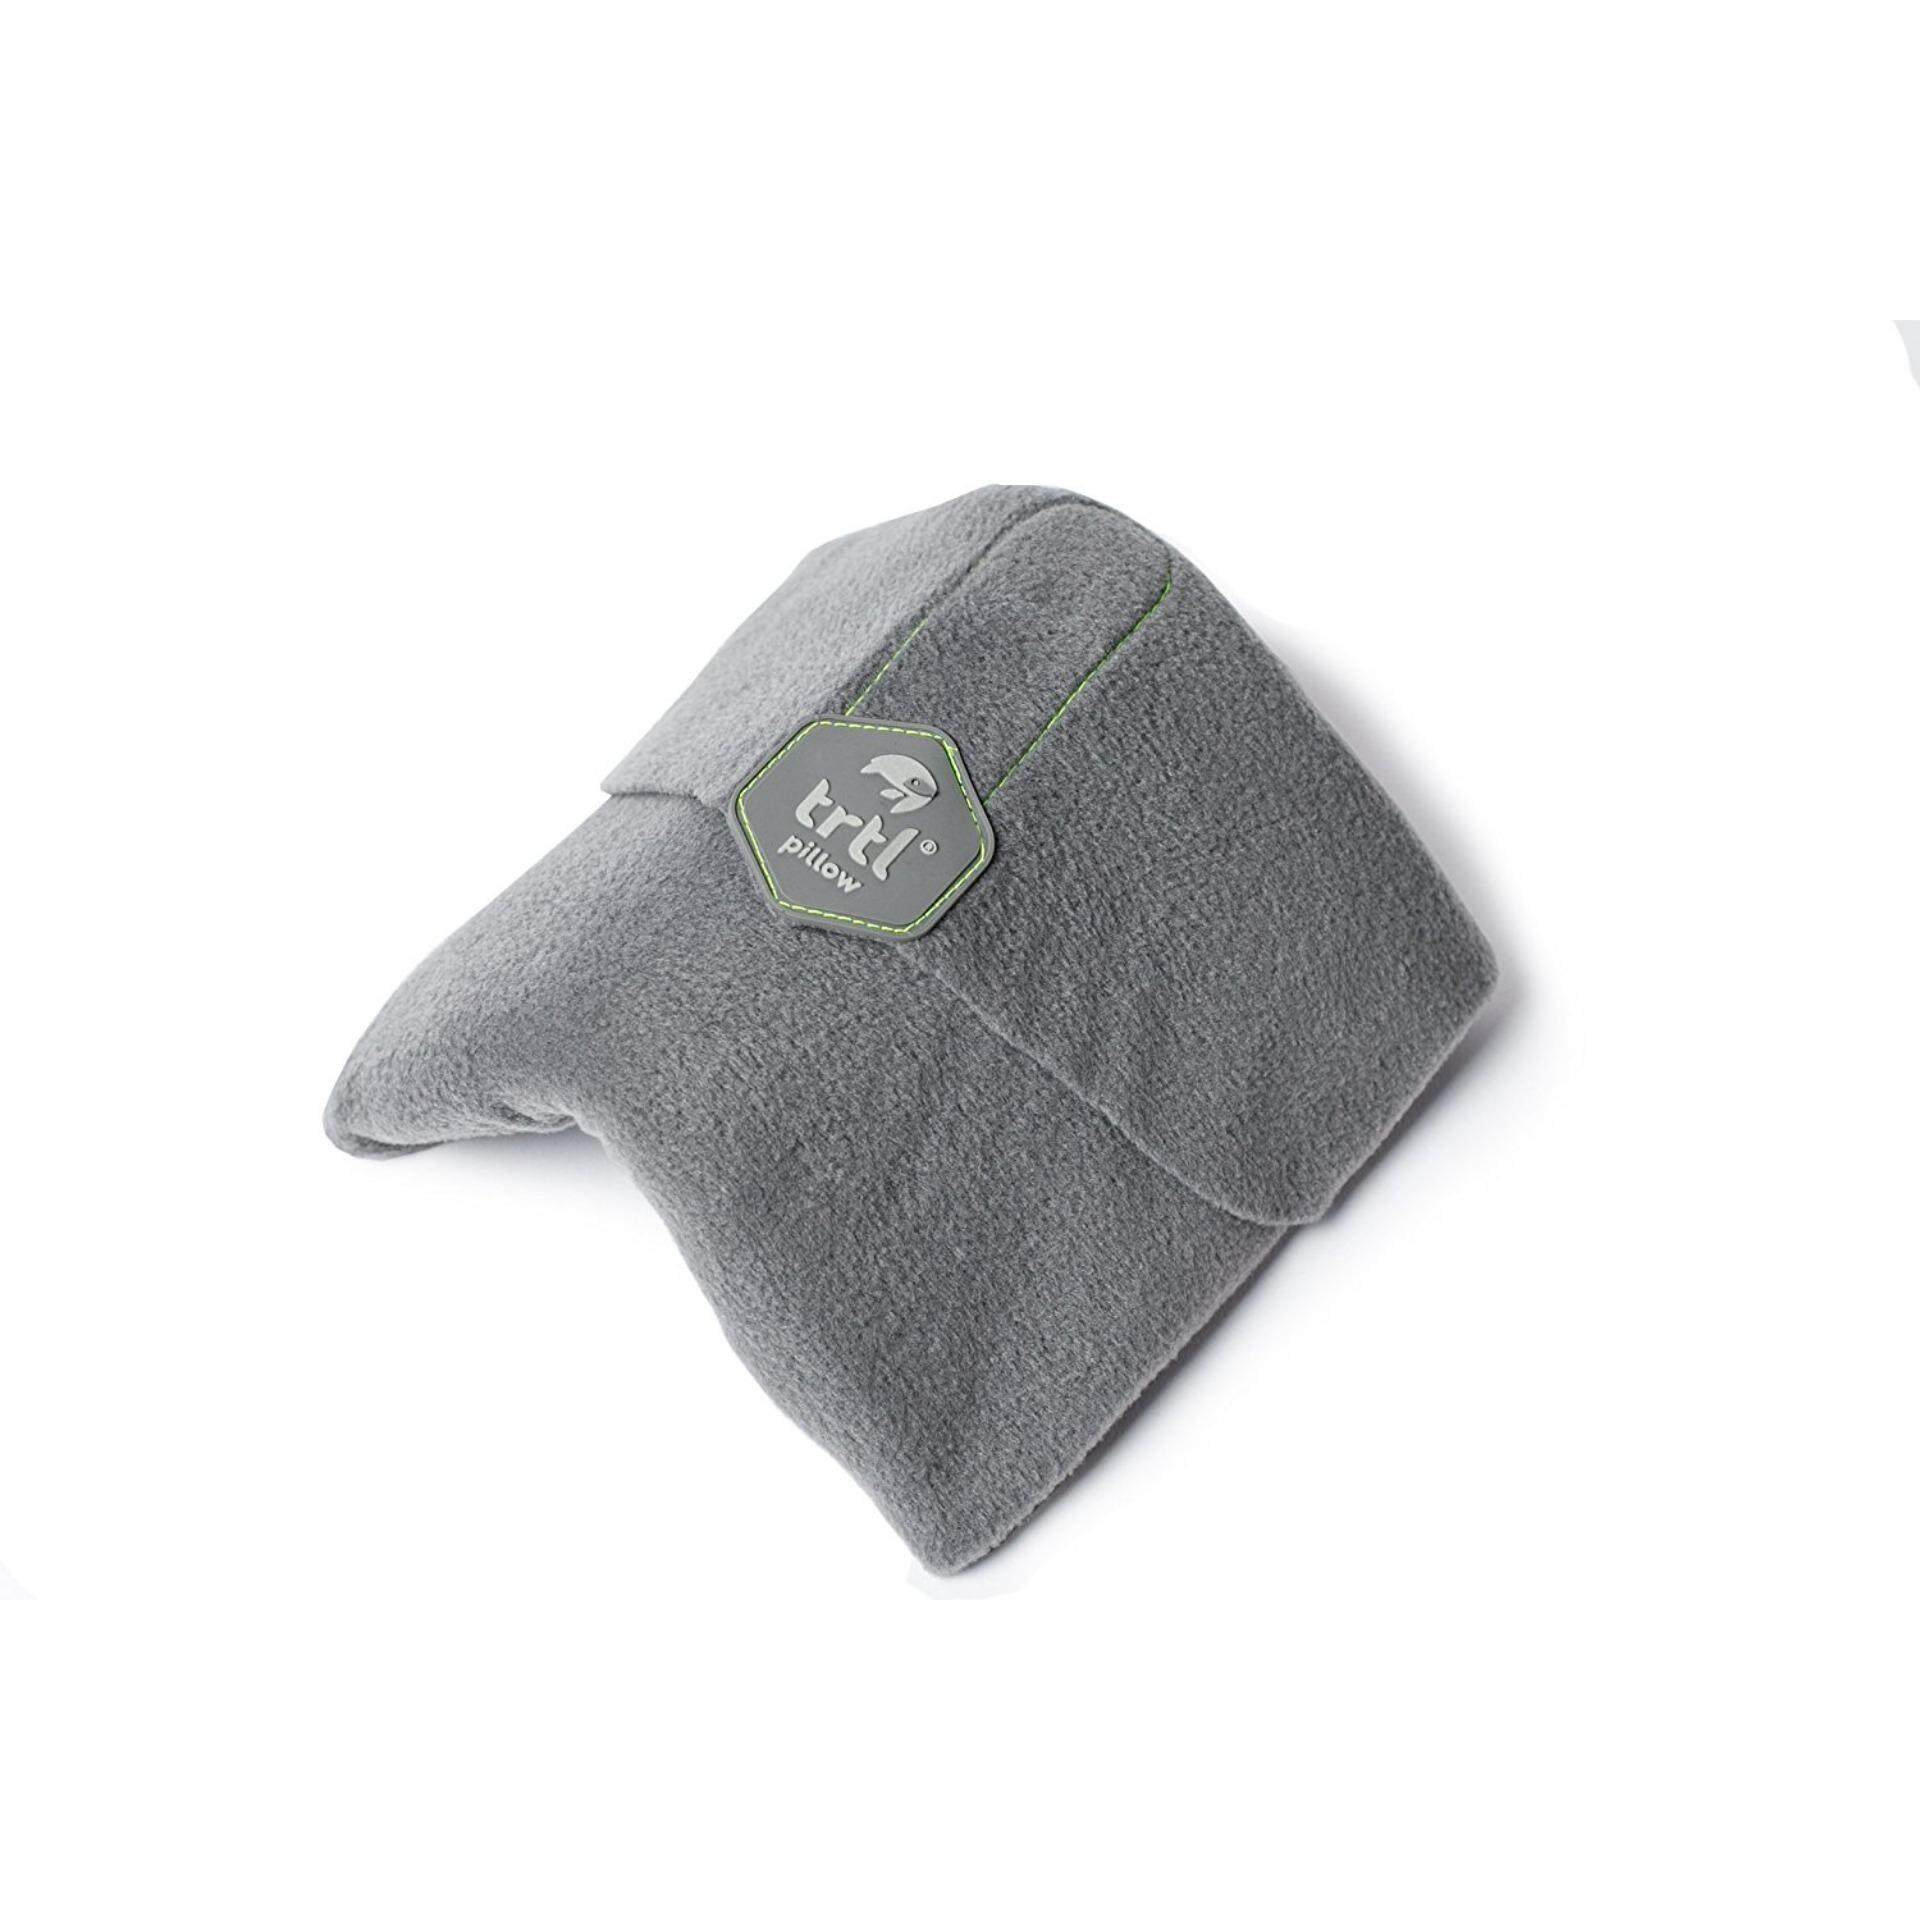 Trtl : TRTGY1-NS-1-2015* หมอนรองคอแบบผ้า Pillow - Scientifically Proven Super Soft Neck Support